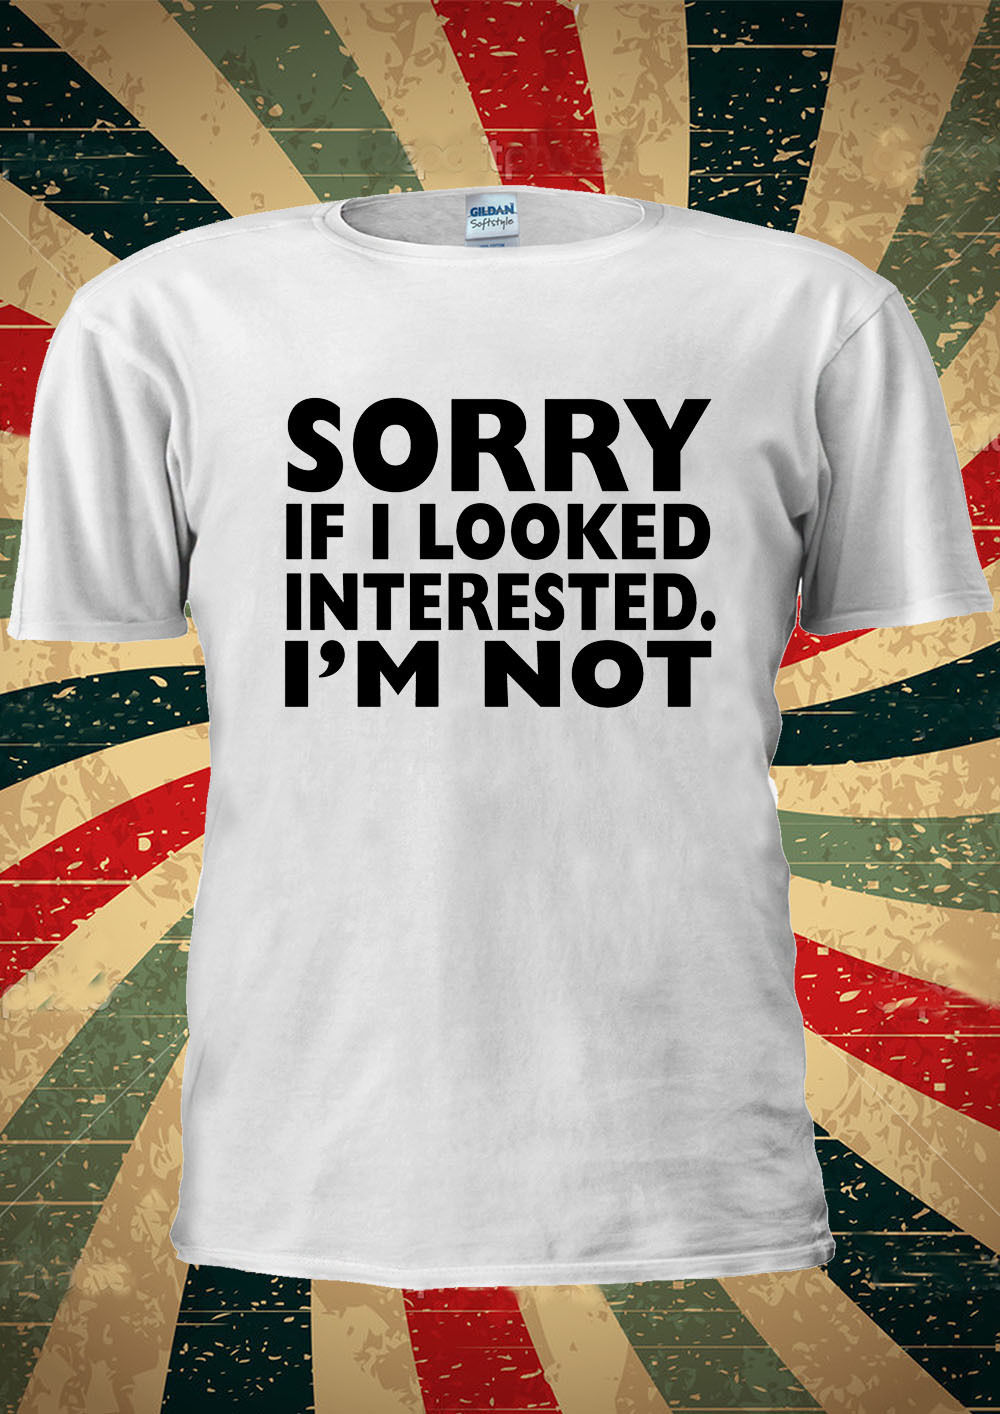 Sorry If I Looked Intrested I'm Not Tumblr Blog T Shirt Men Women Unisex 1356 Free shipping new fashion 100% Cotton For Man Tee image